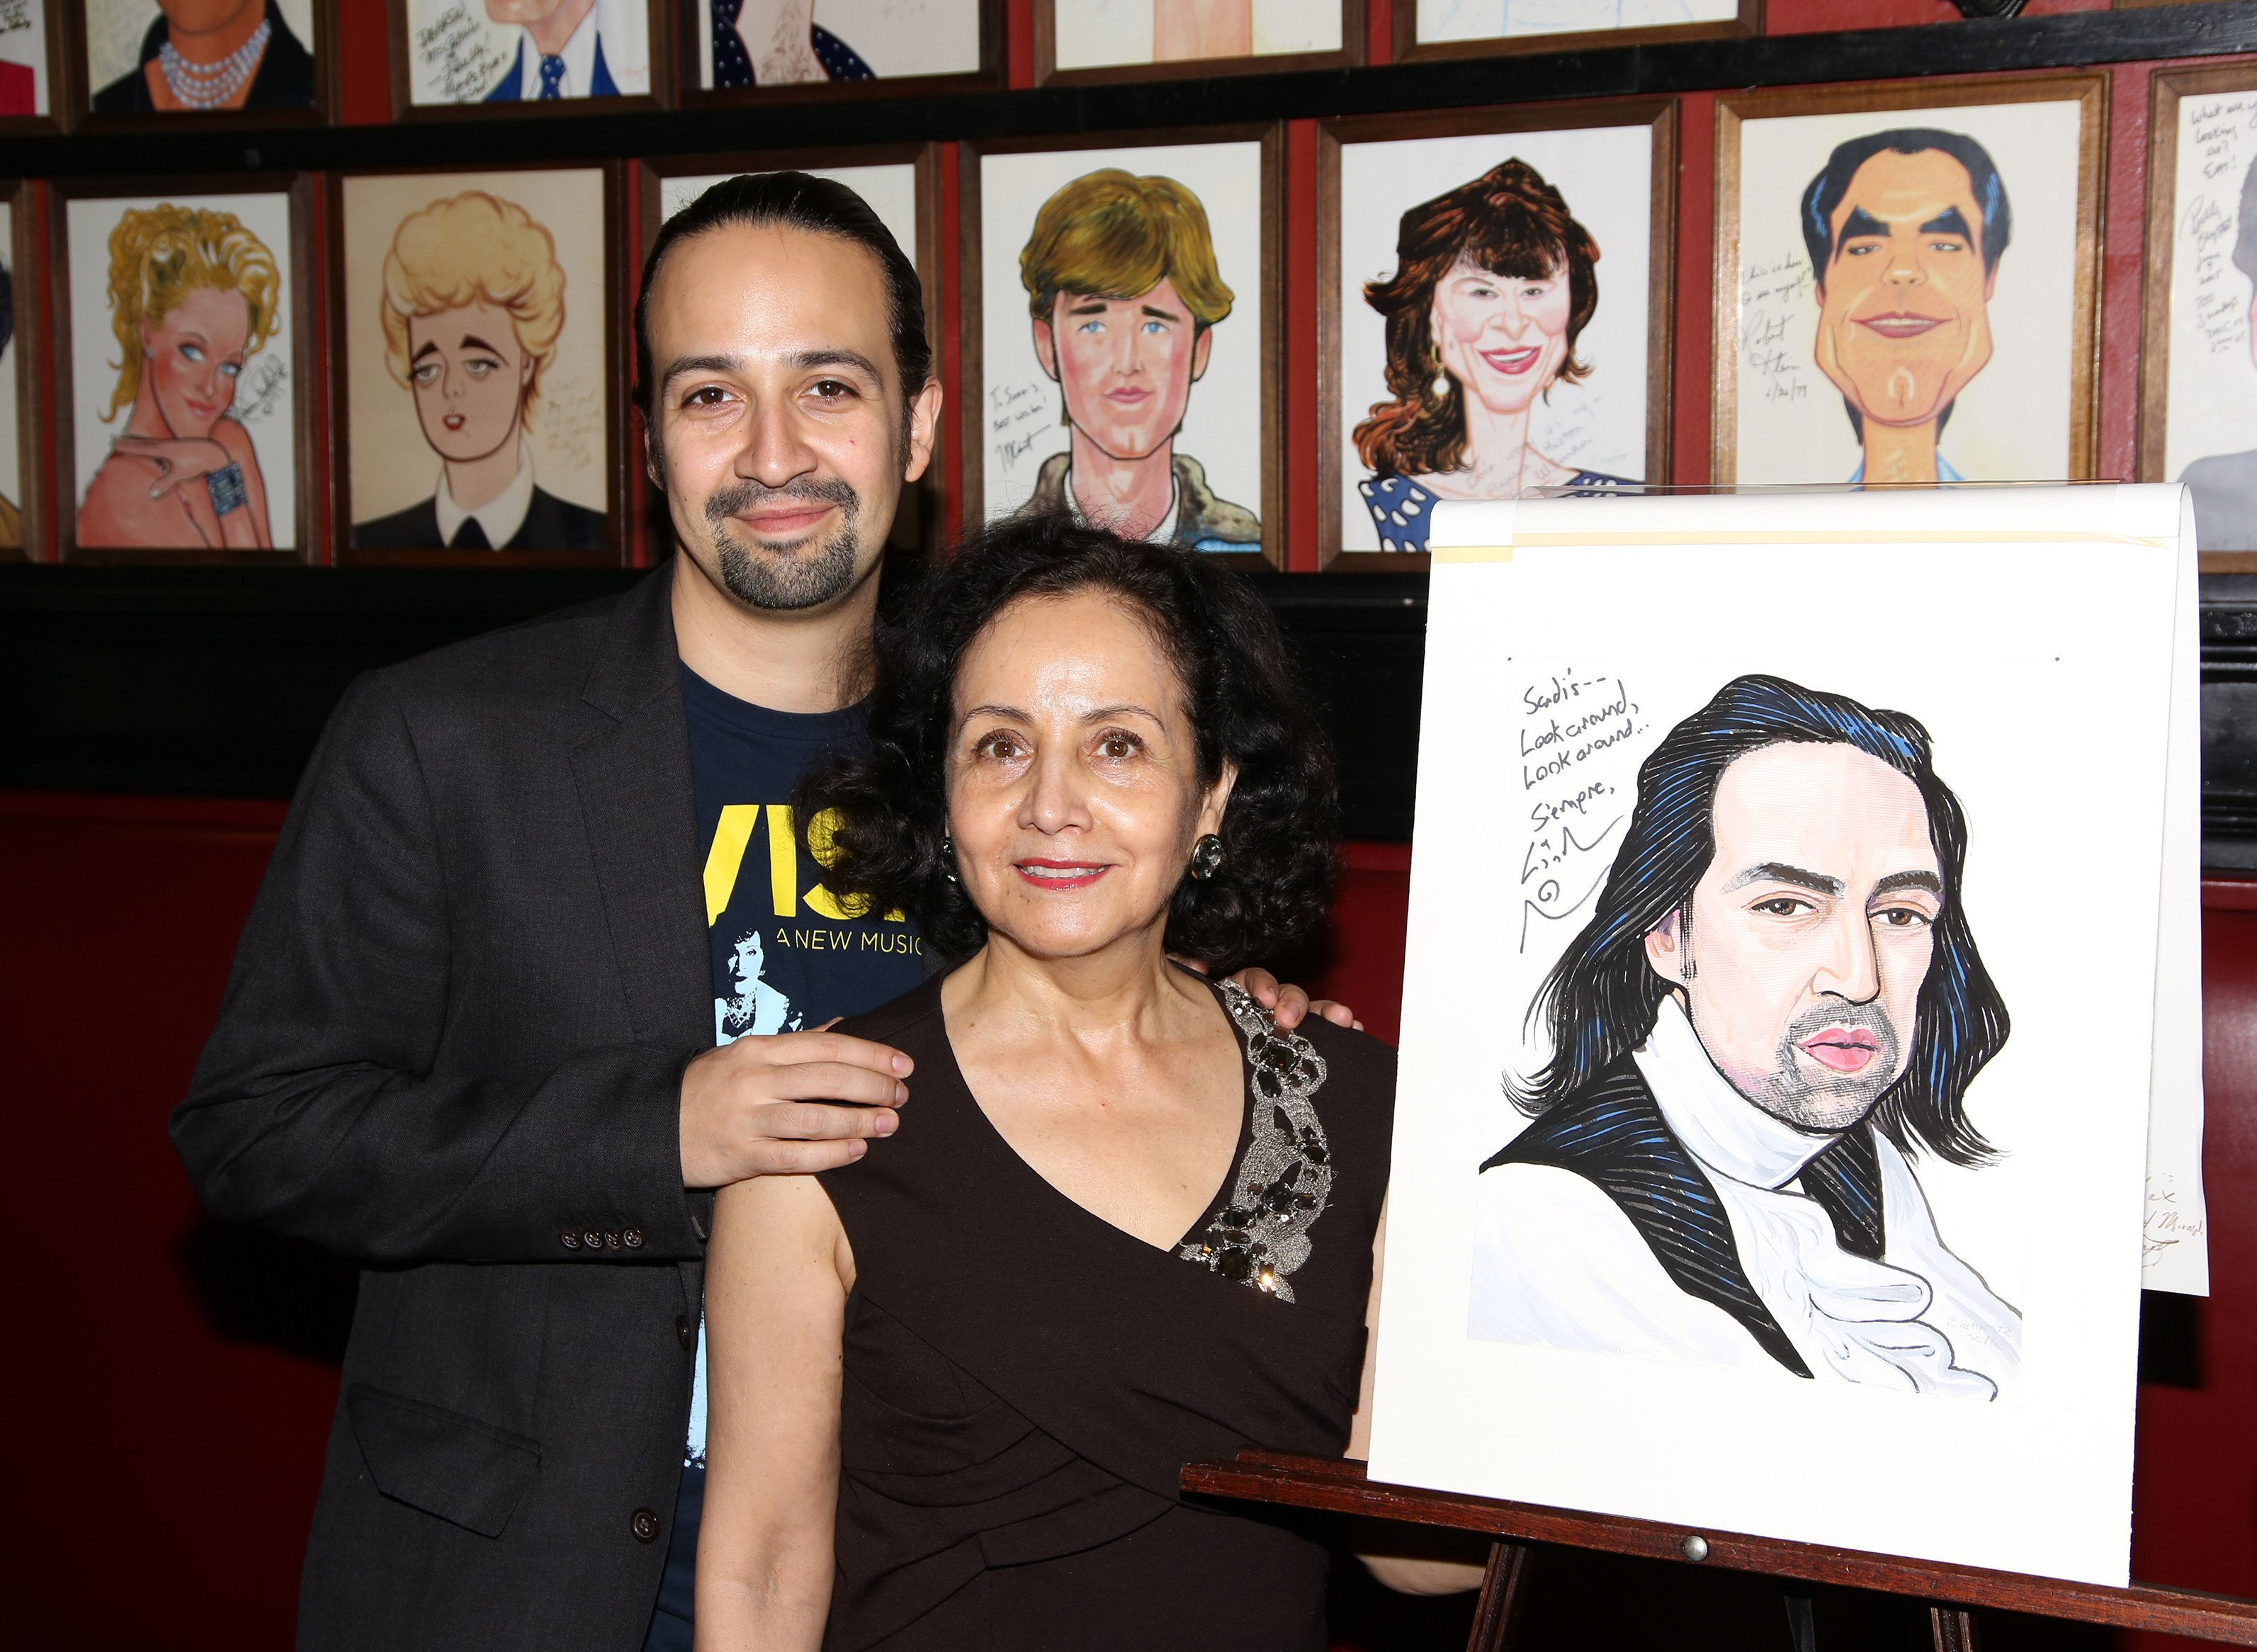 Together, Lin-Manuel Miranda and his mom, Luz Towns-Miranda, watched the unveiling of hisportrait at Sardi's in New York City.